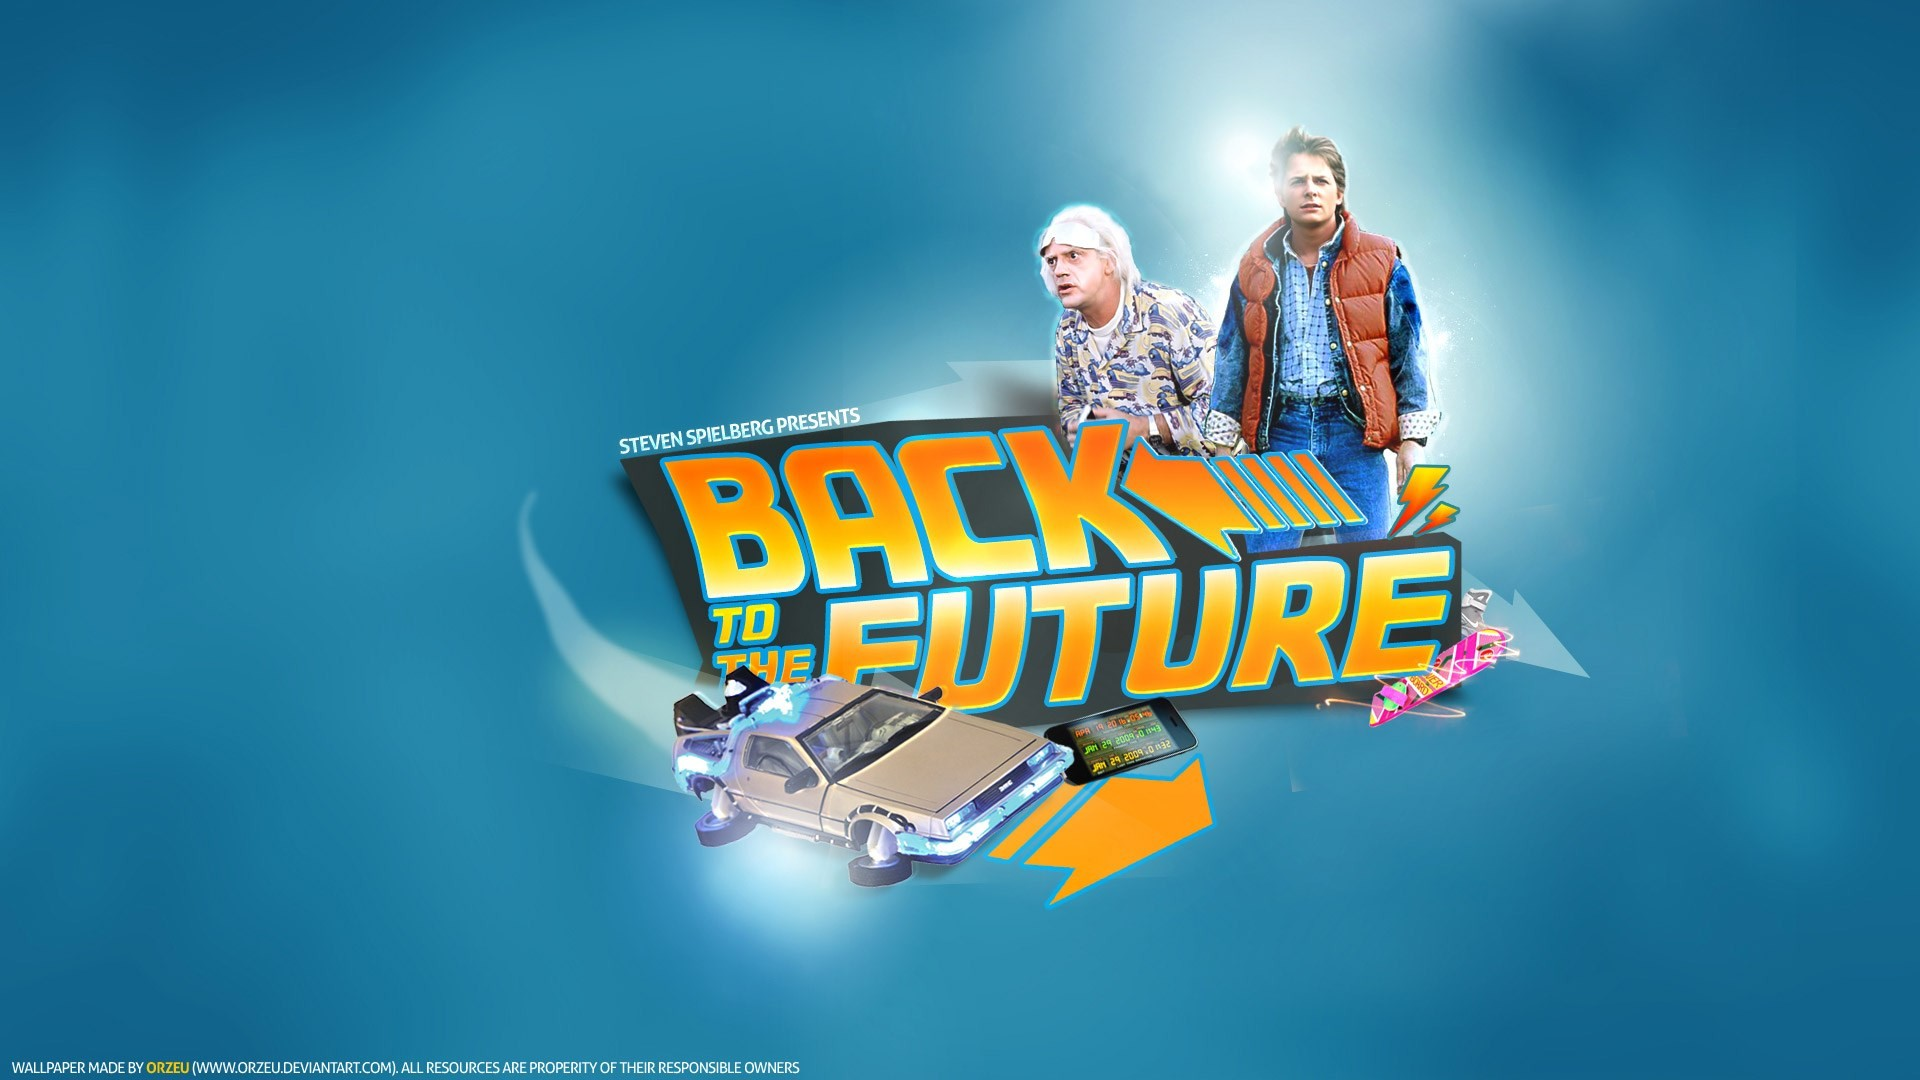 1920x1080 back to the future computer wallpaper backgrounds - back to the future  category